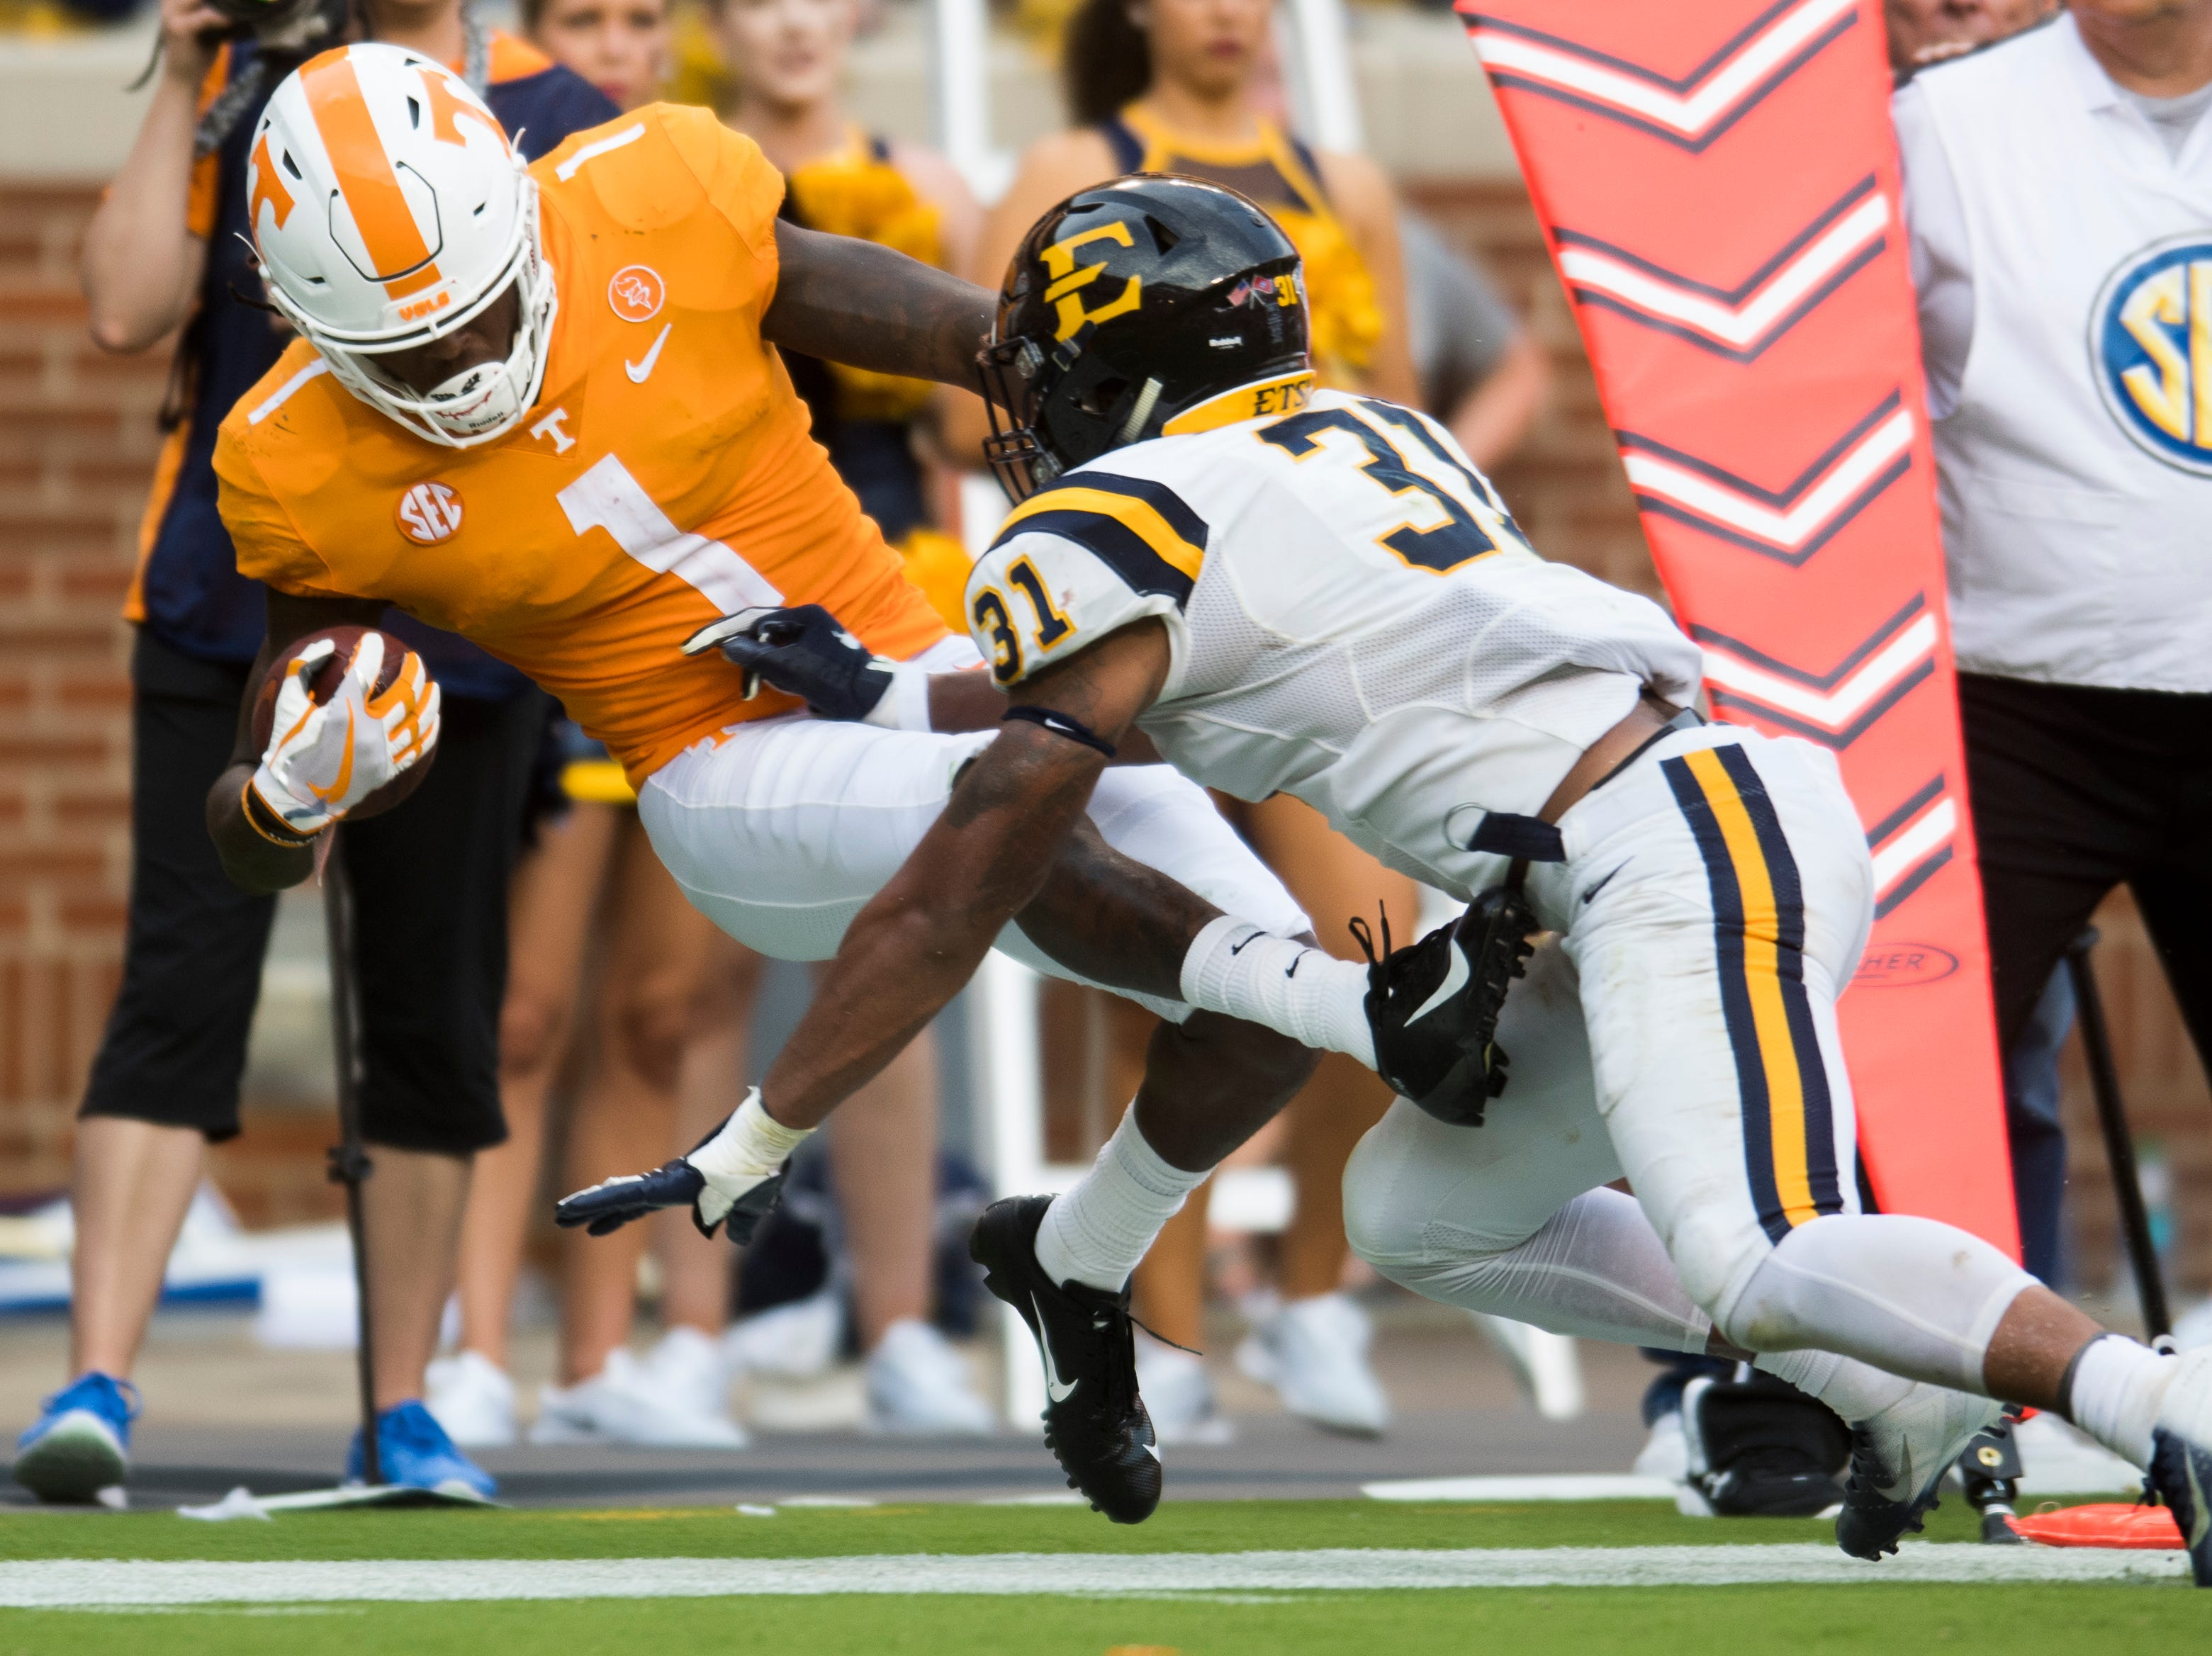 Tennessee wide receiver Marquez Callaway (1) is knocked out of bounds by ETSU linebacker Jared Folks (31) during a game between Tennessee and ETSU at Neyland Stadium in Knoxville, Tennessee on Saturday, September 8, 2018.